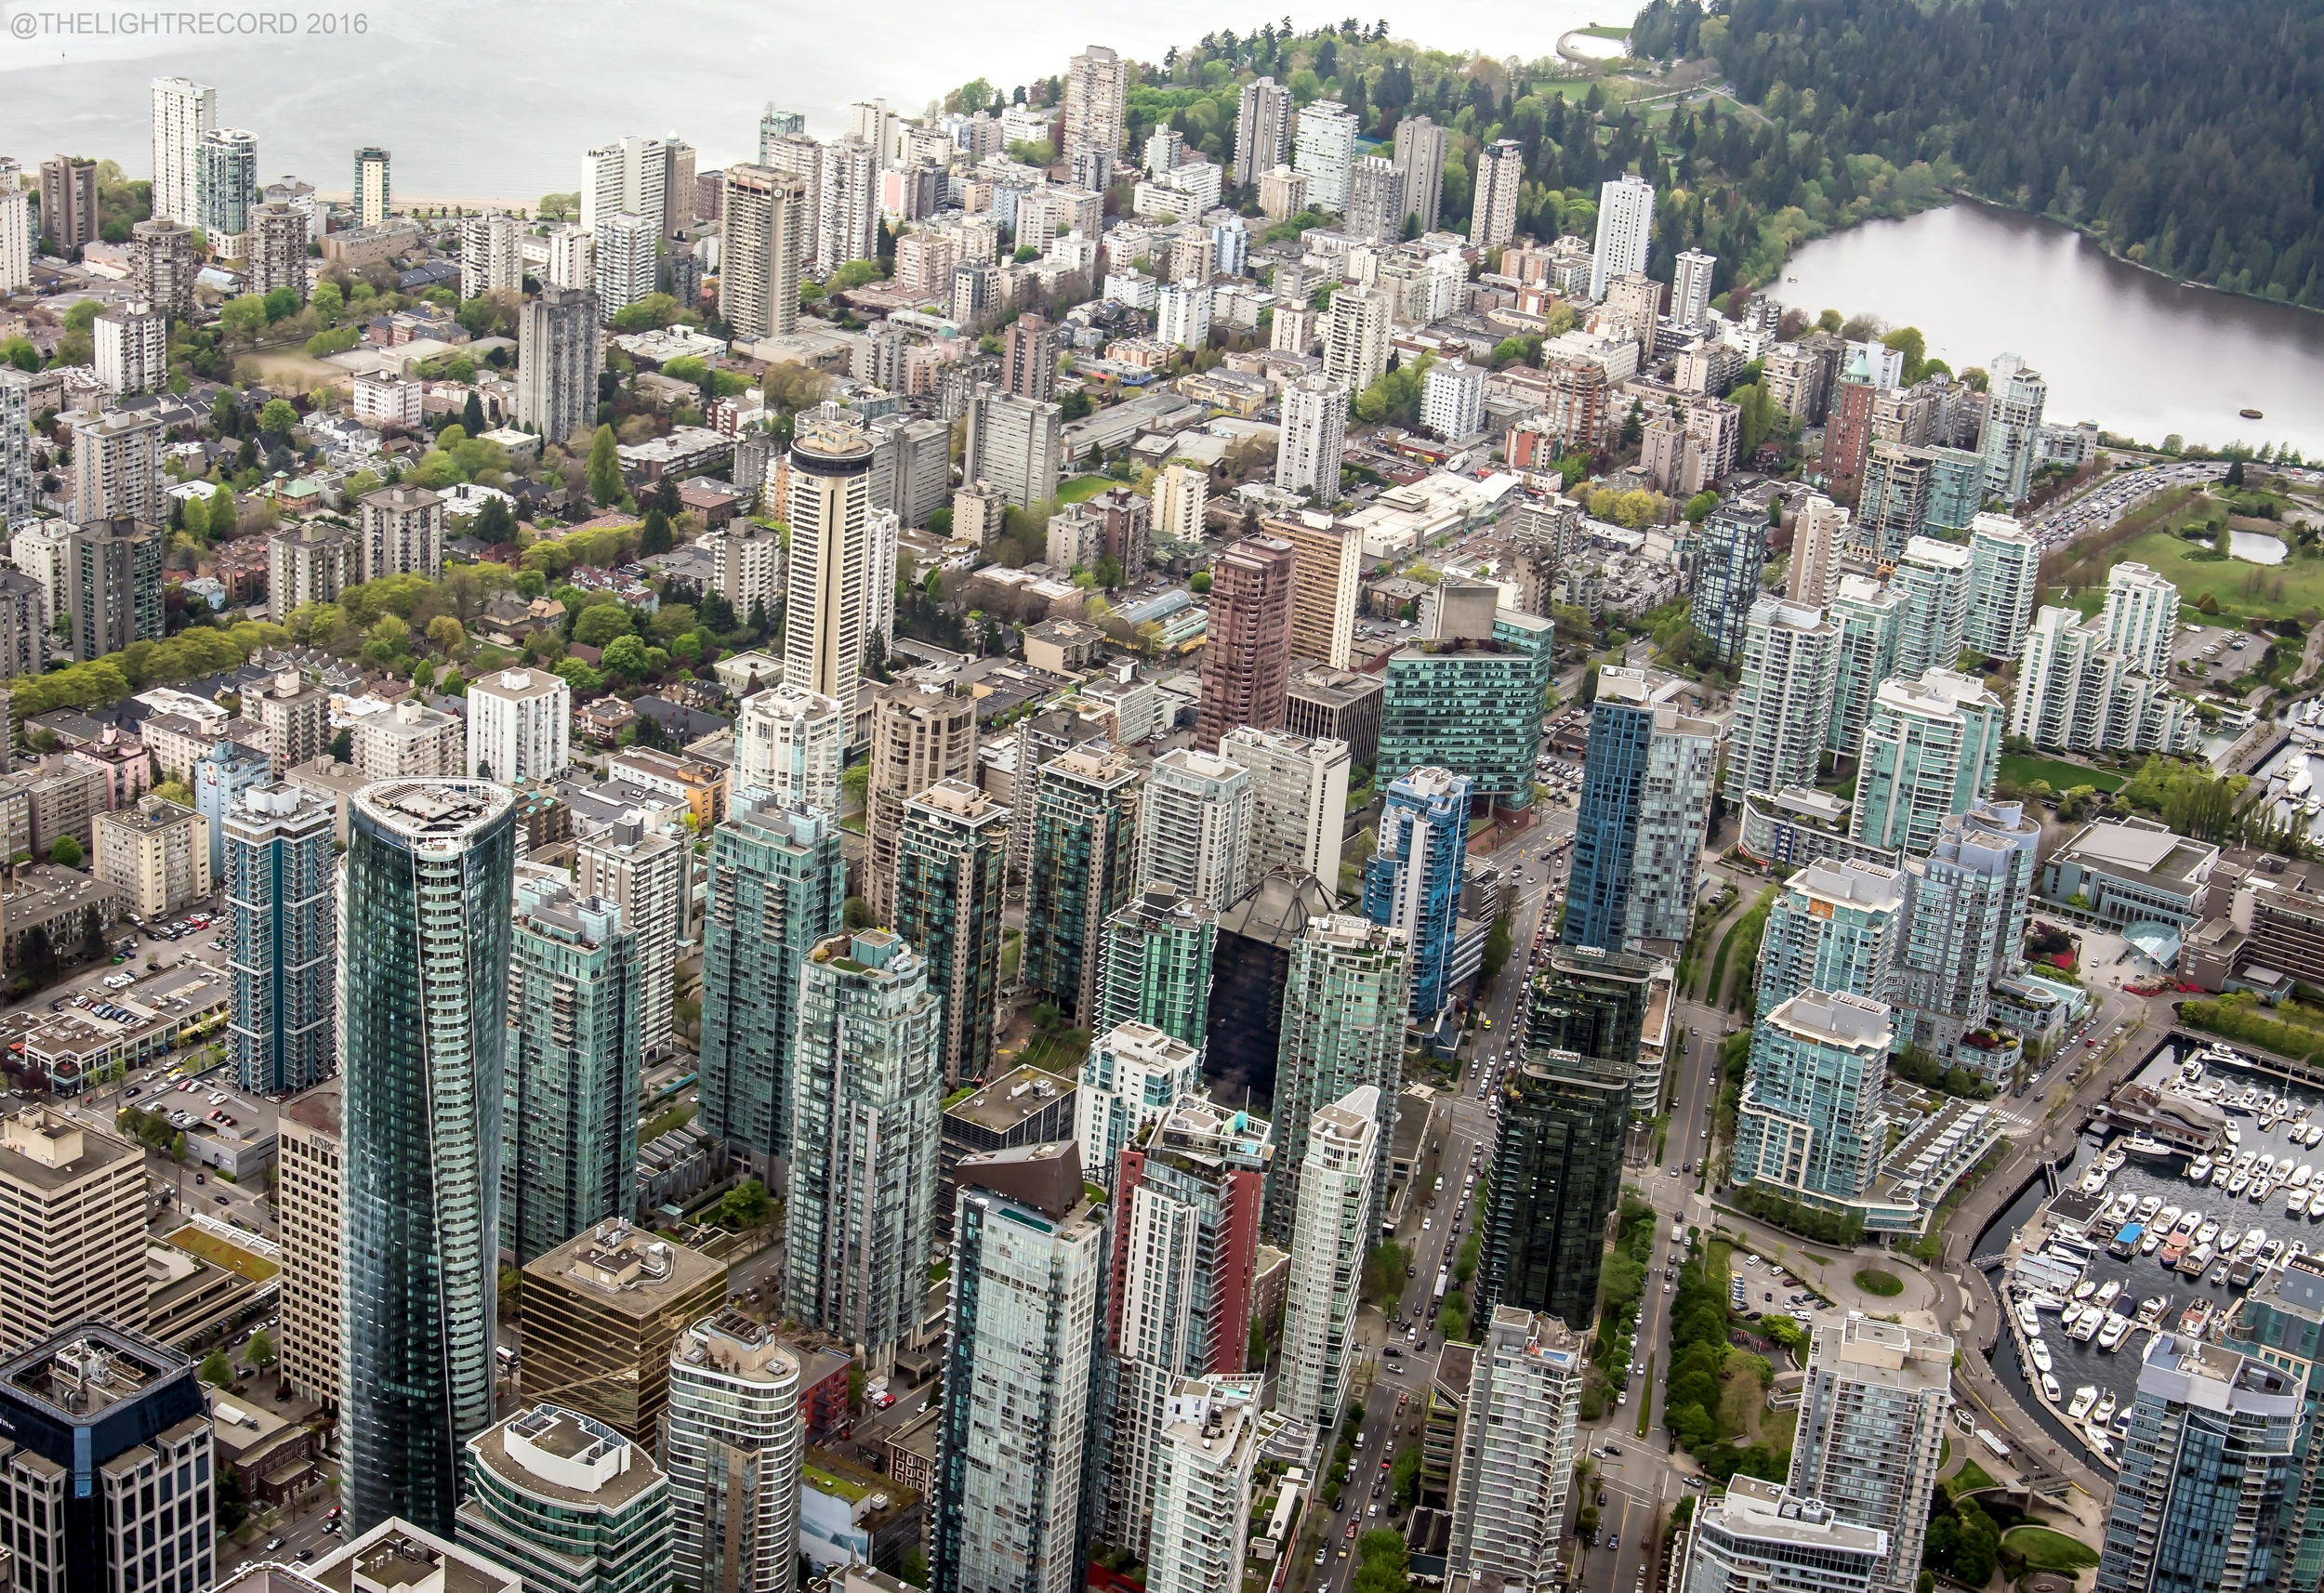 The Trump Tower (lower left) is scheduled to open in August. It is currently the second tallest building in Vancouver.